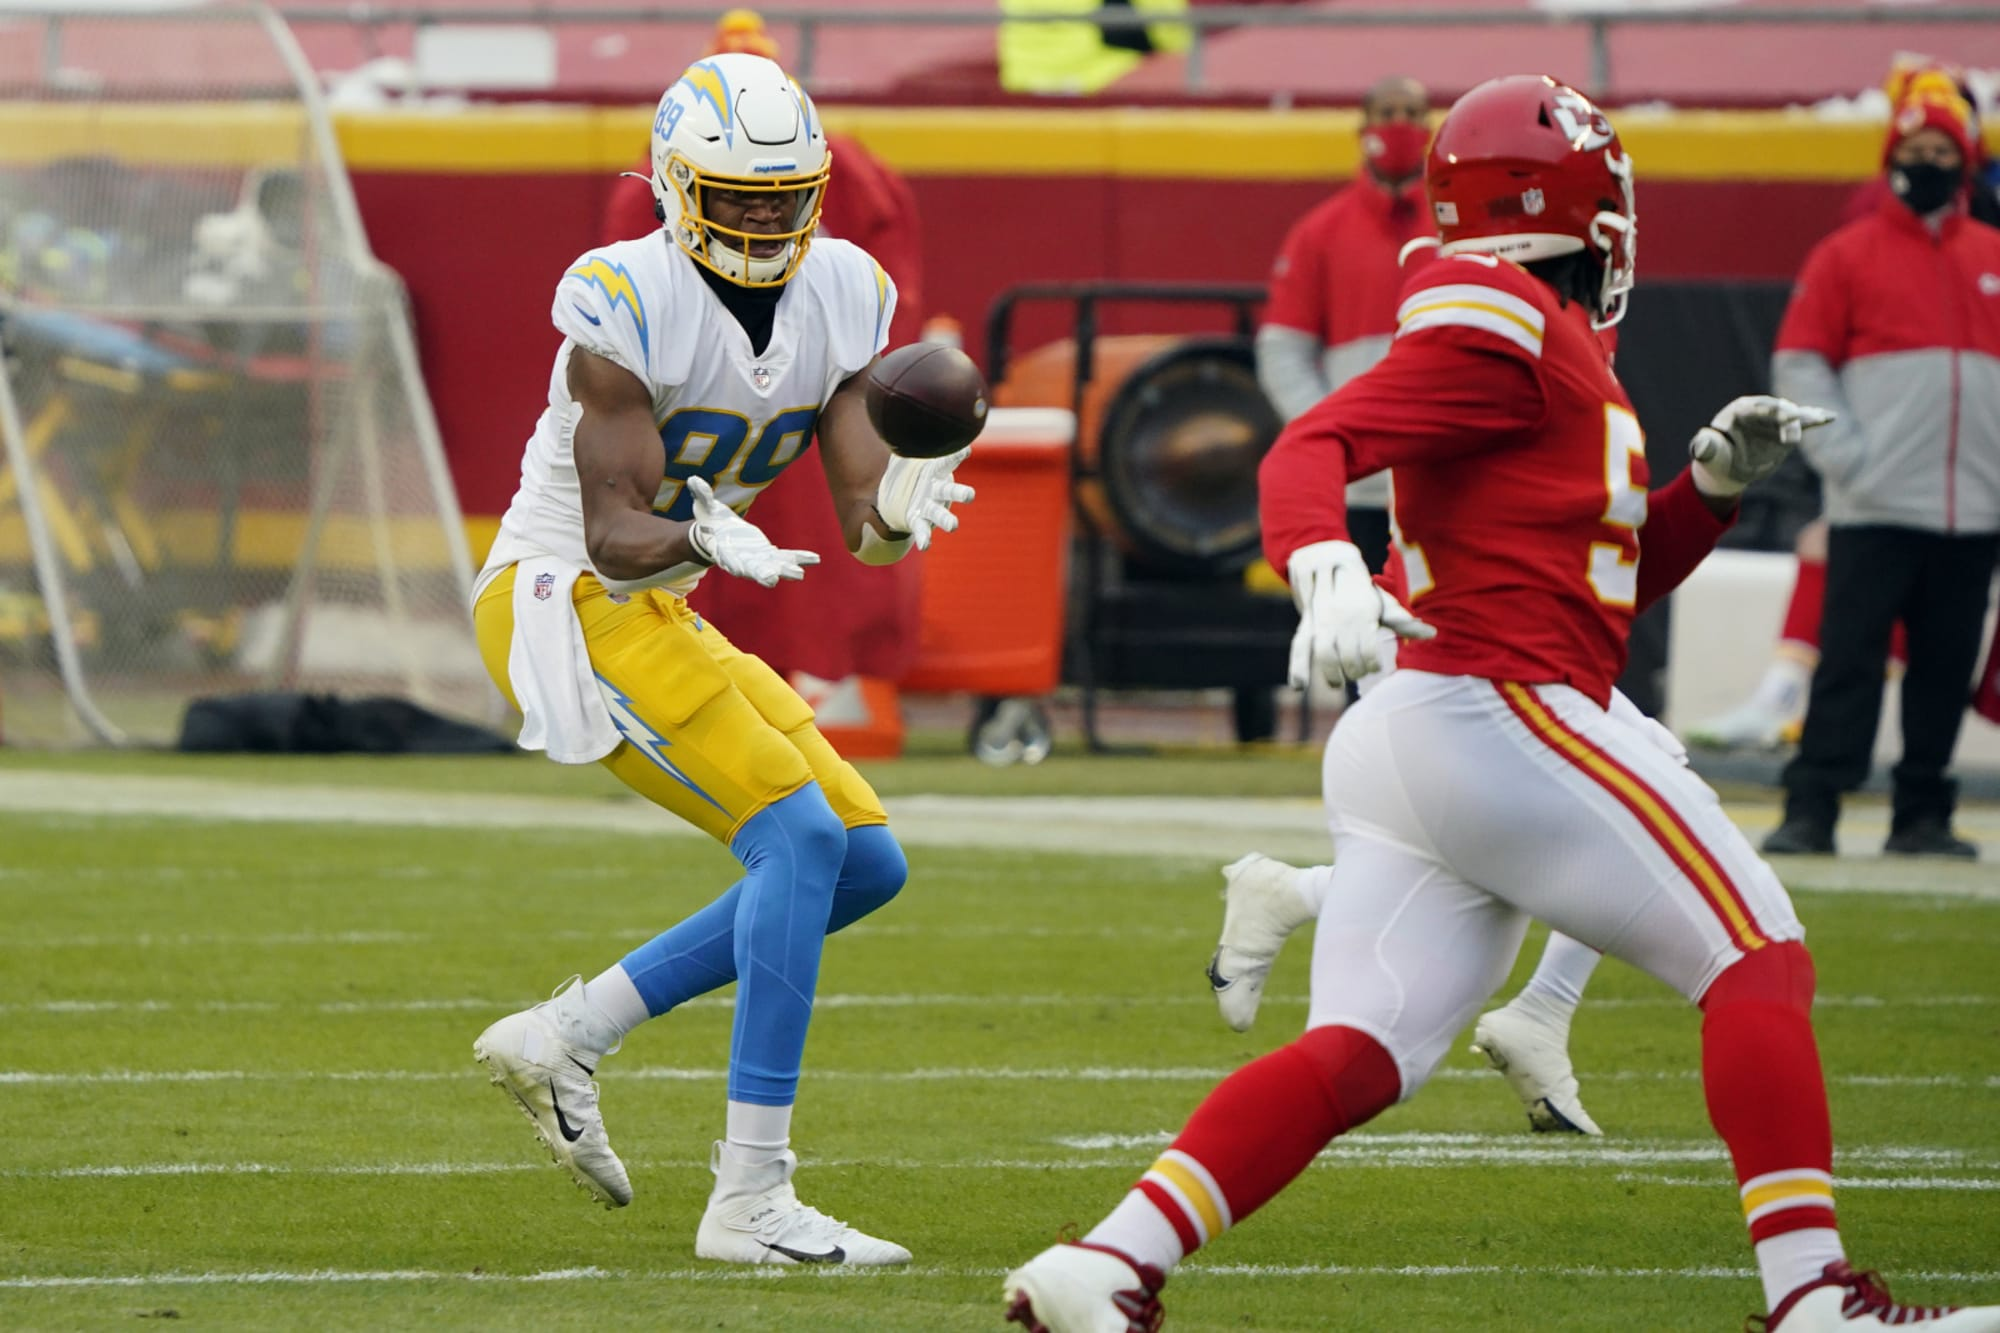 LA Chargers: One of the NFL's most underrated tight end duos